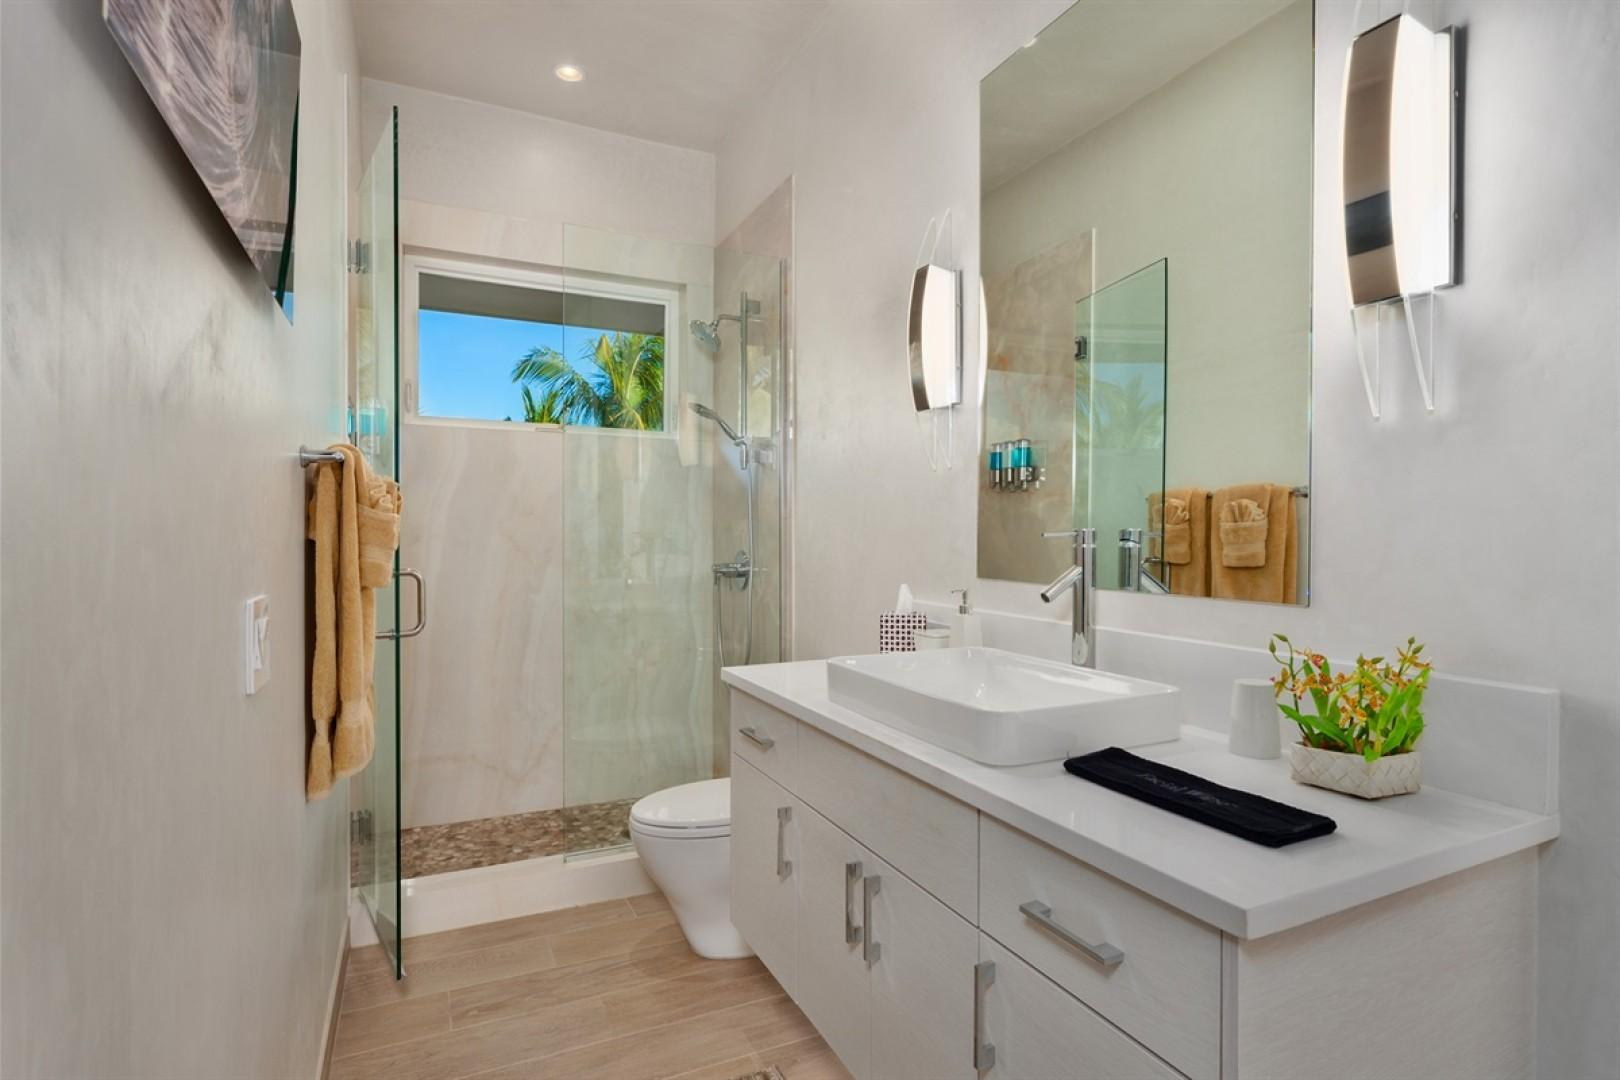 Shared Jack and Jill full bath with shower between bedrooms 7 and 8.